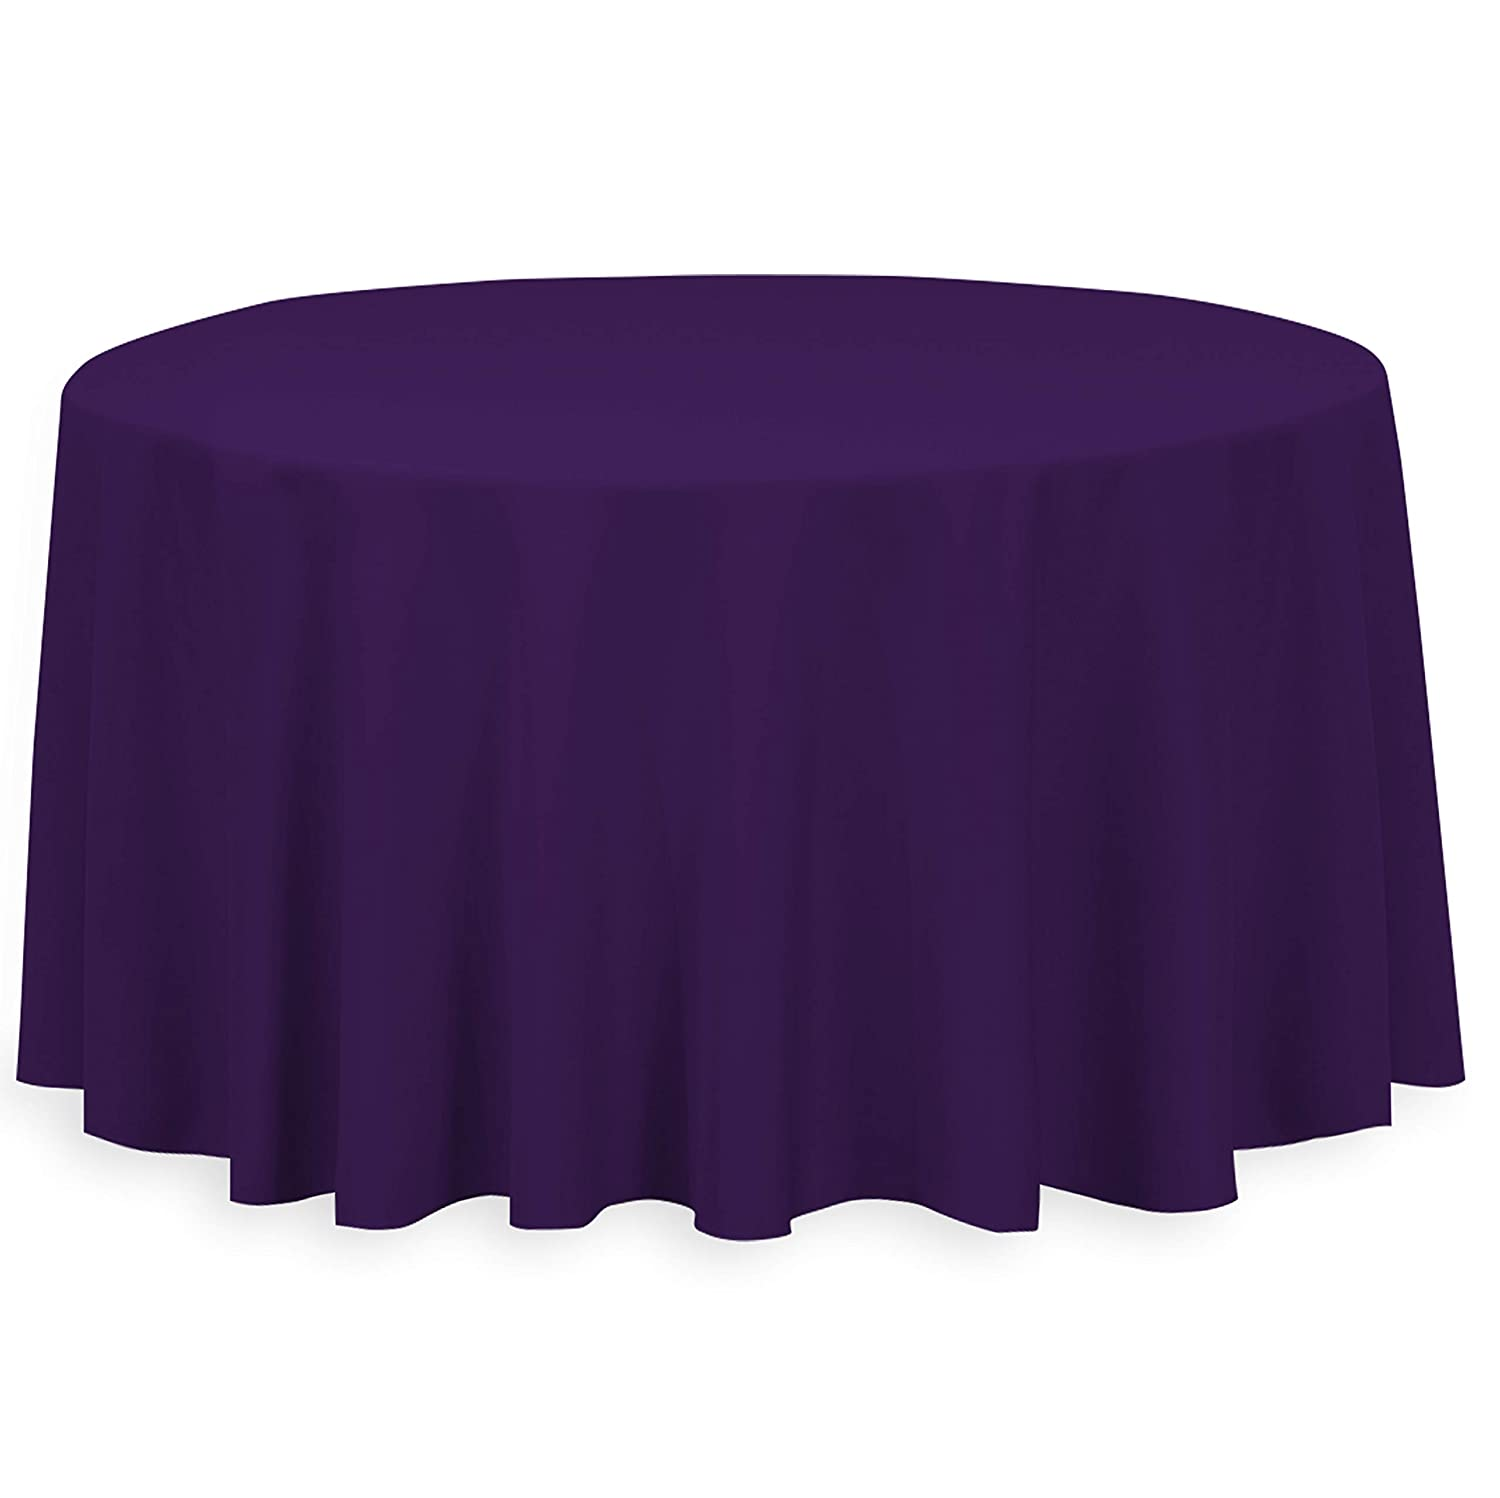 Getting Wrinkles Out Of Polyester Tablecloths